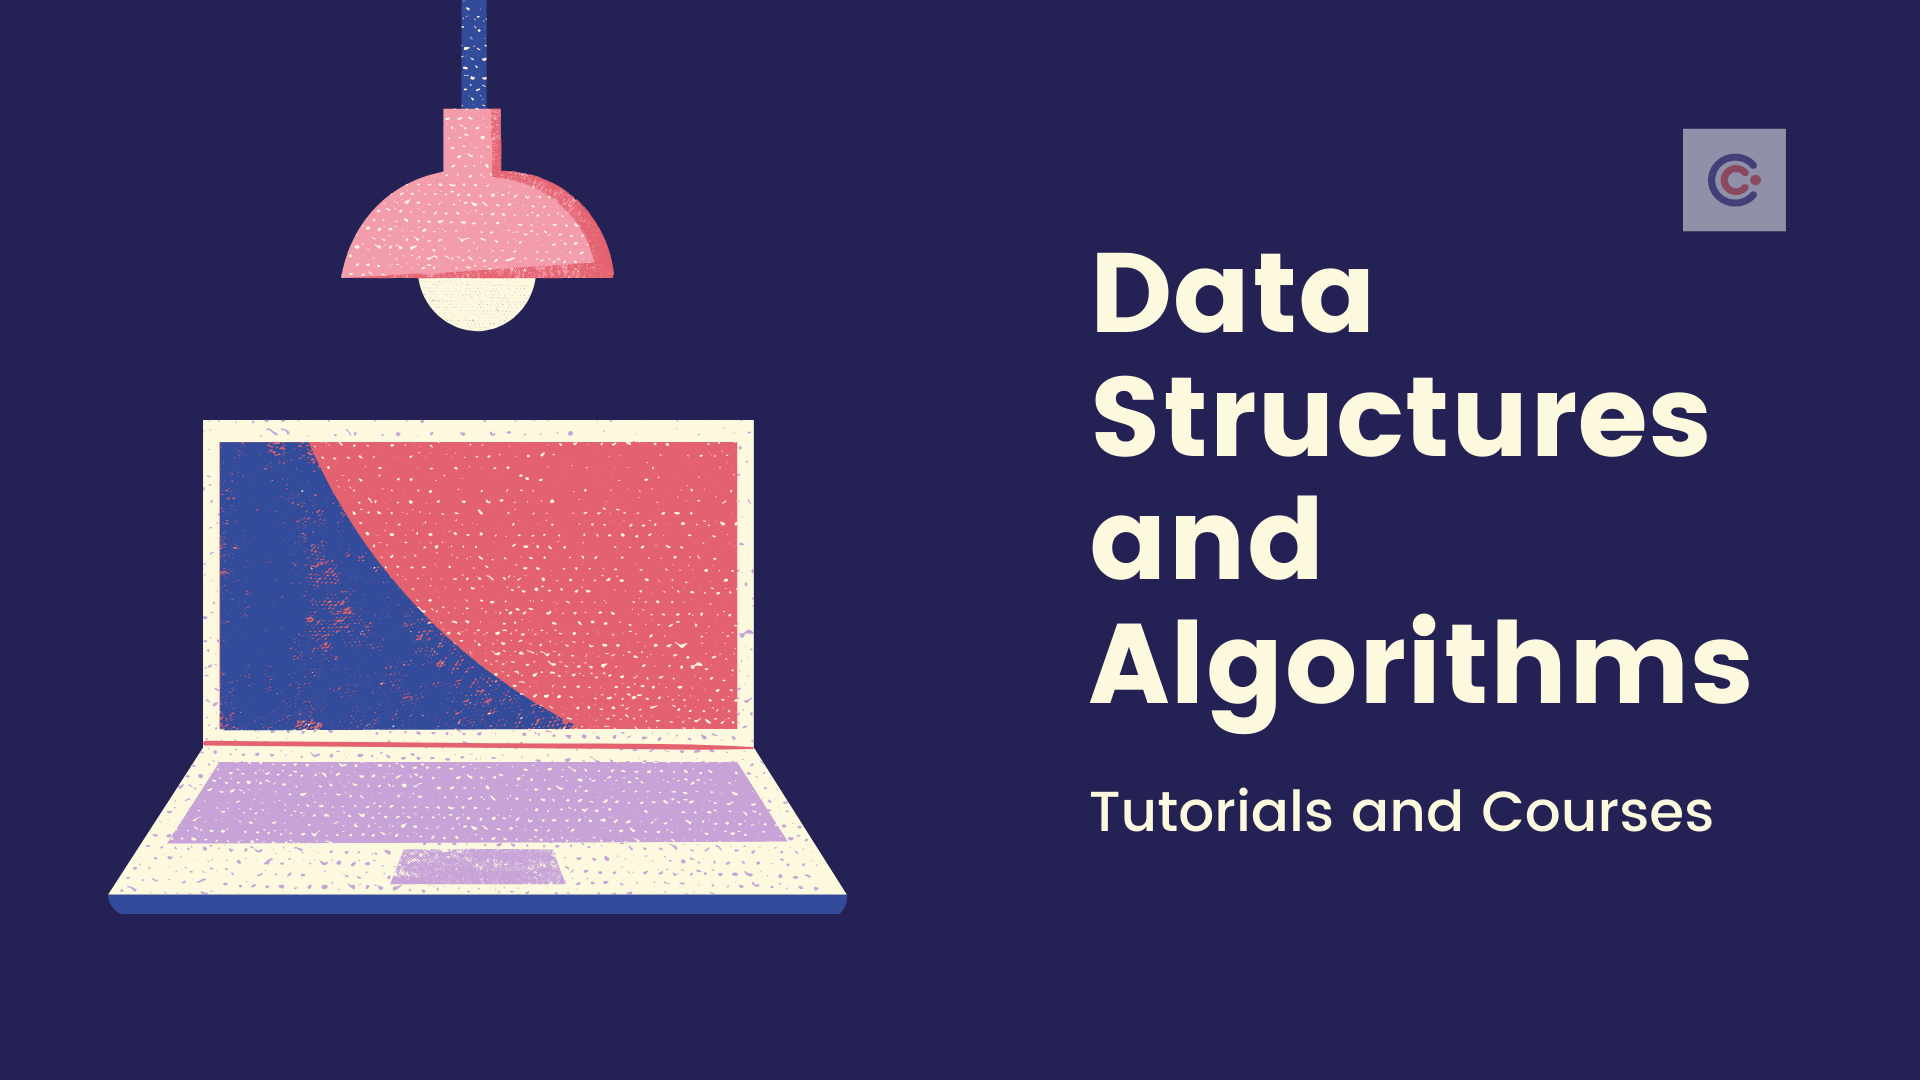 17 Best Data Structures & Algorithms Tutorials and Courses - Learn Data Structures and Algorithms Online